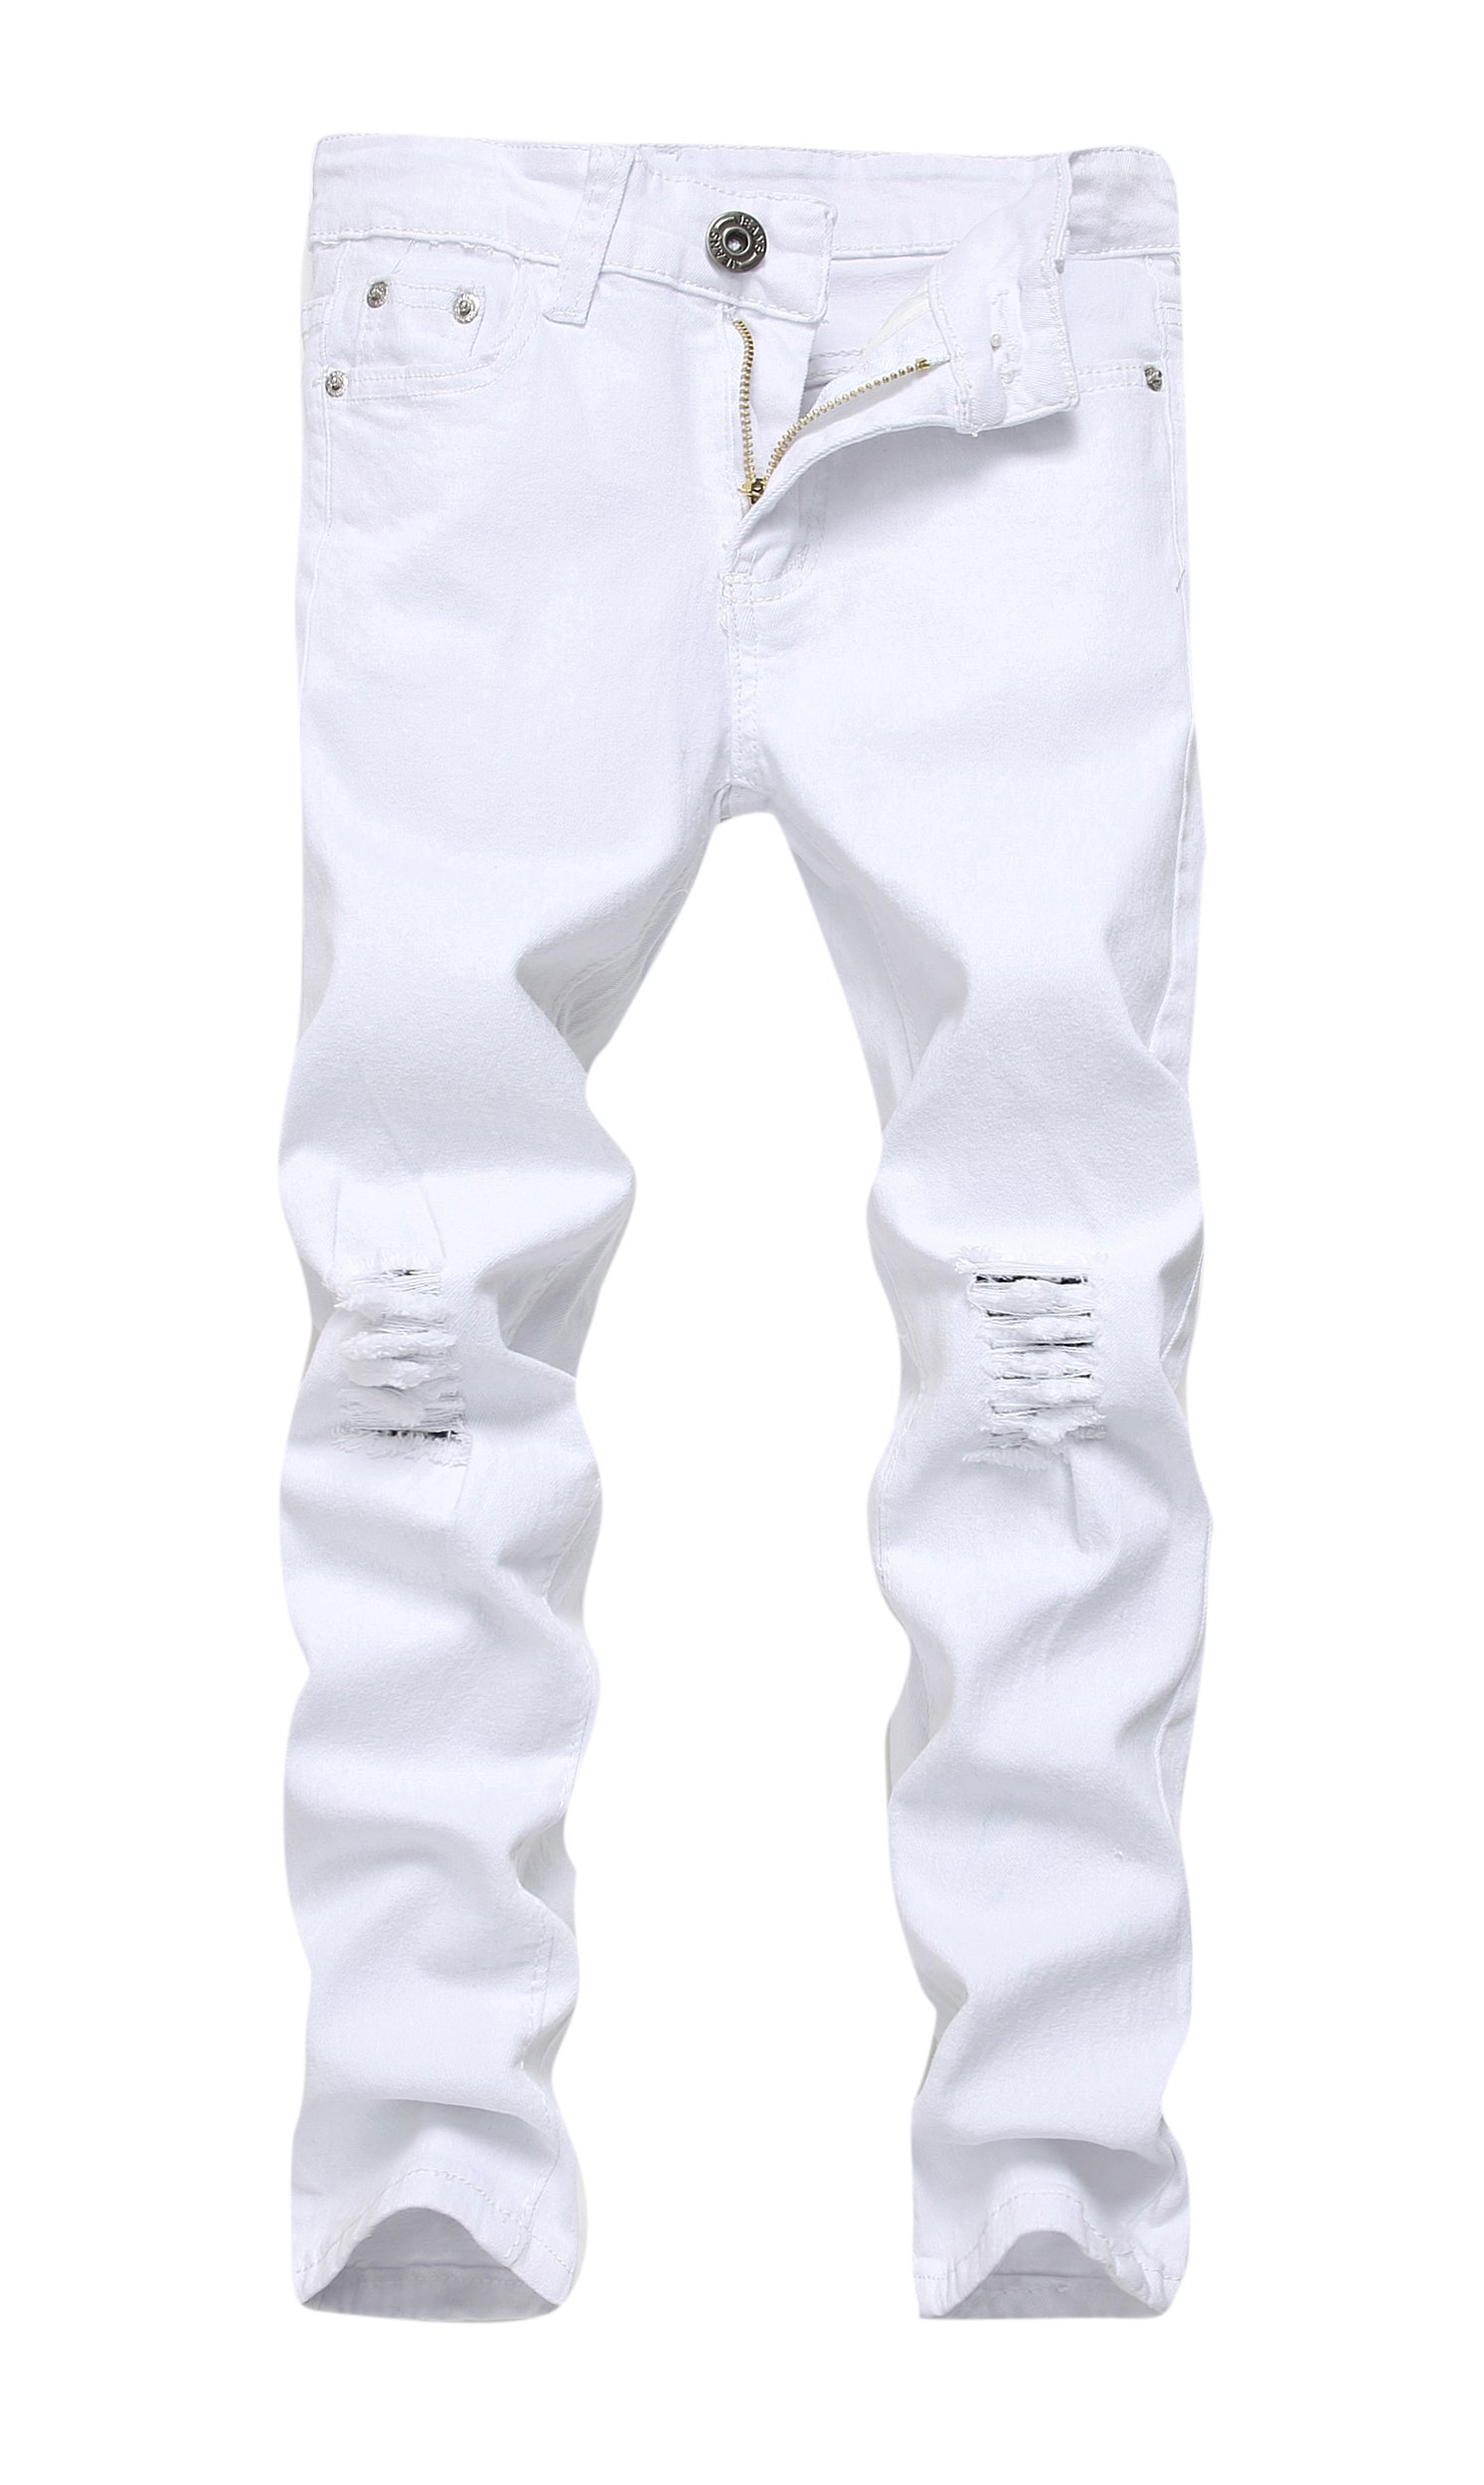 FREDD MARSHALL Boy's White Skinny Fit Ripped Destroyed Distressed Stretch Slim Jeans Pants by FREDD MARSHALL